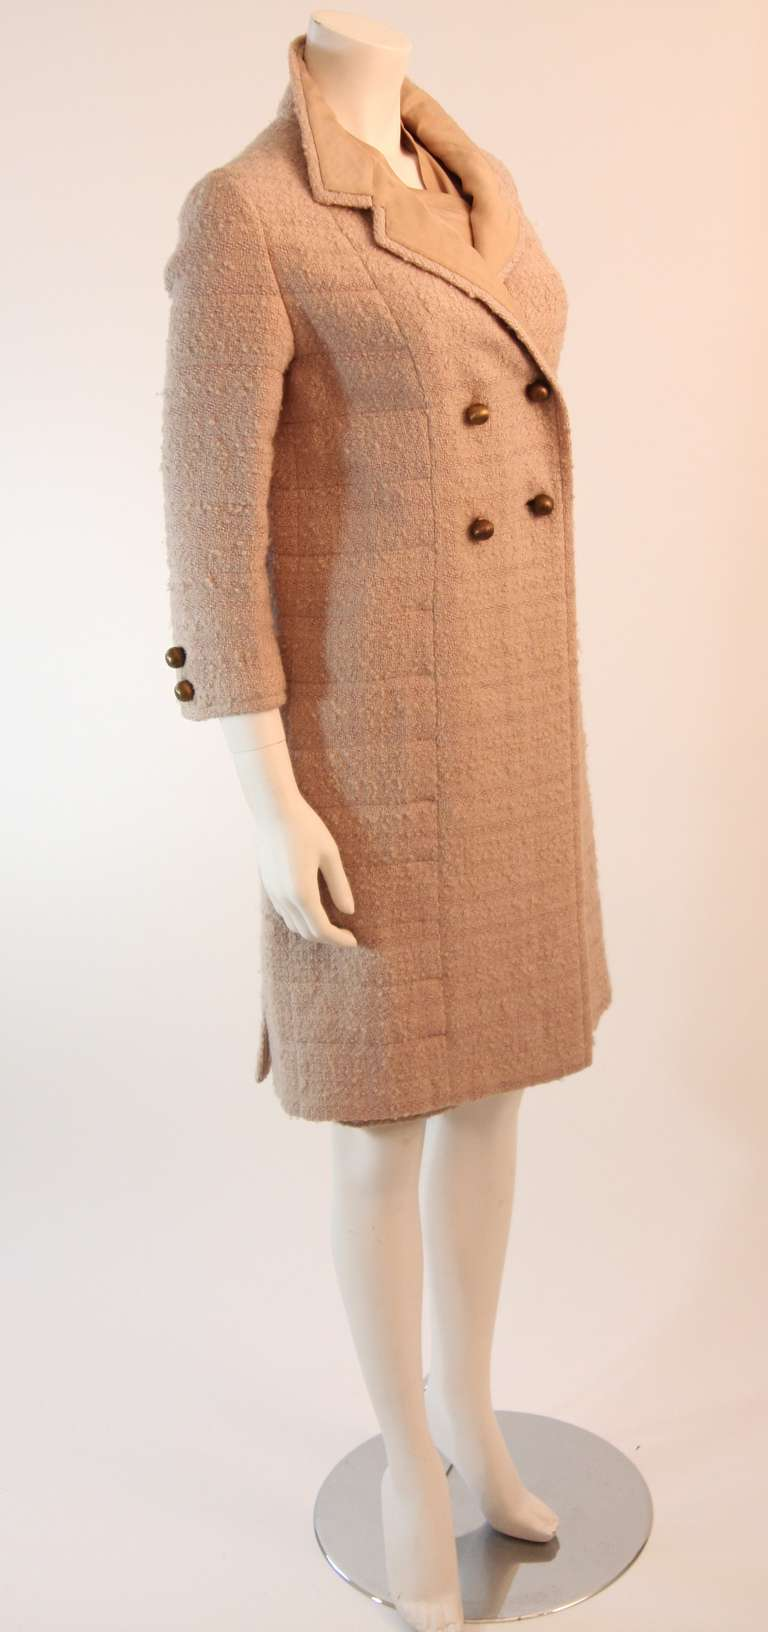 1960's Attributed to Chanel Couture Cream Boucle 3 Piece Tweed Suit 4